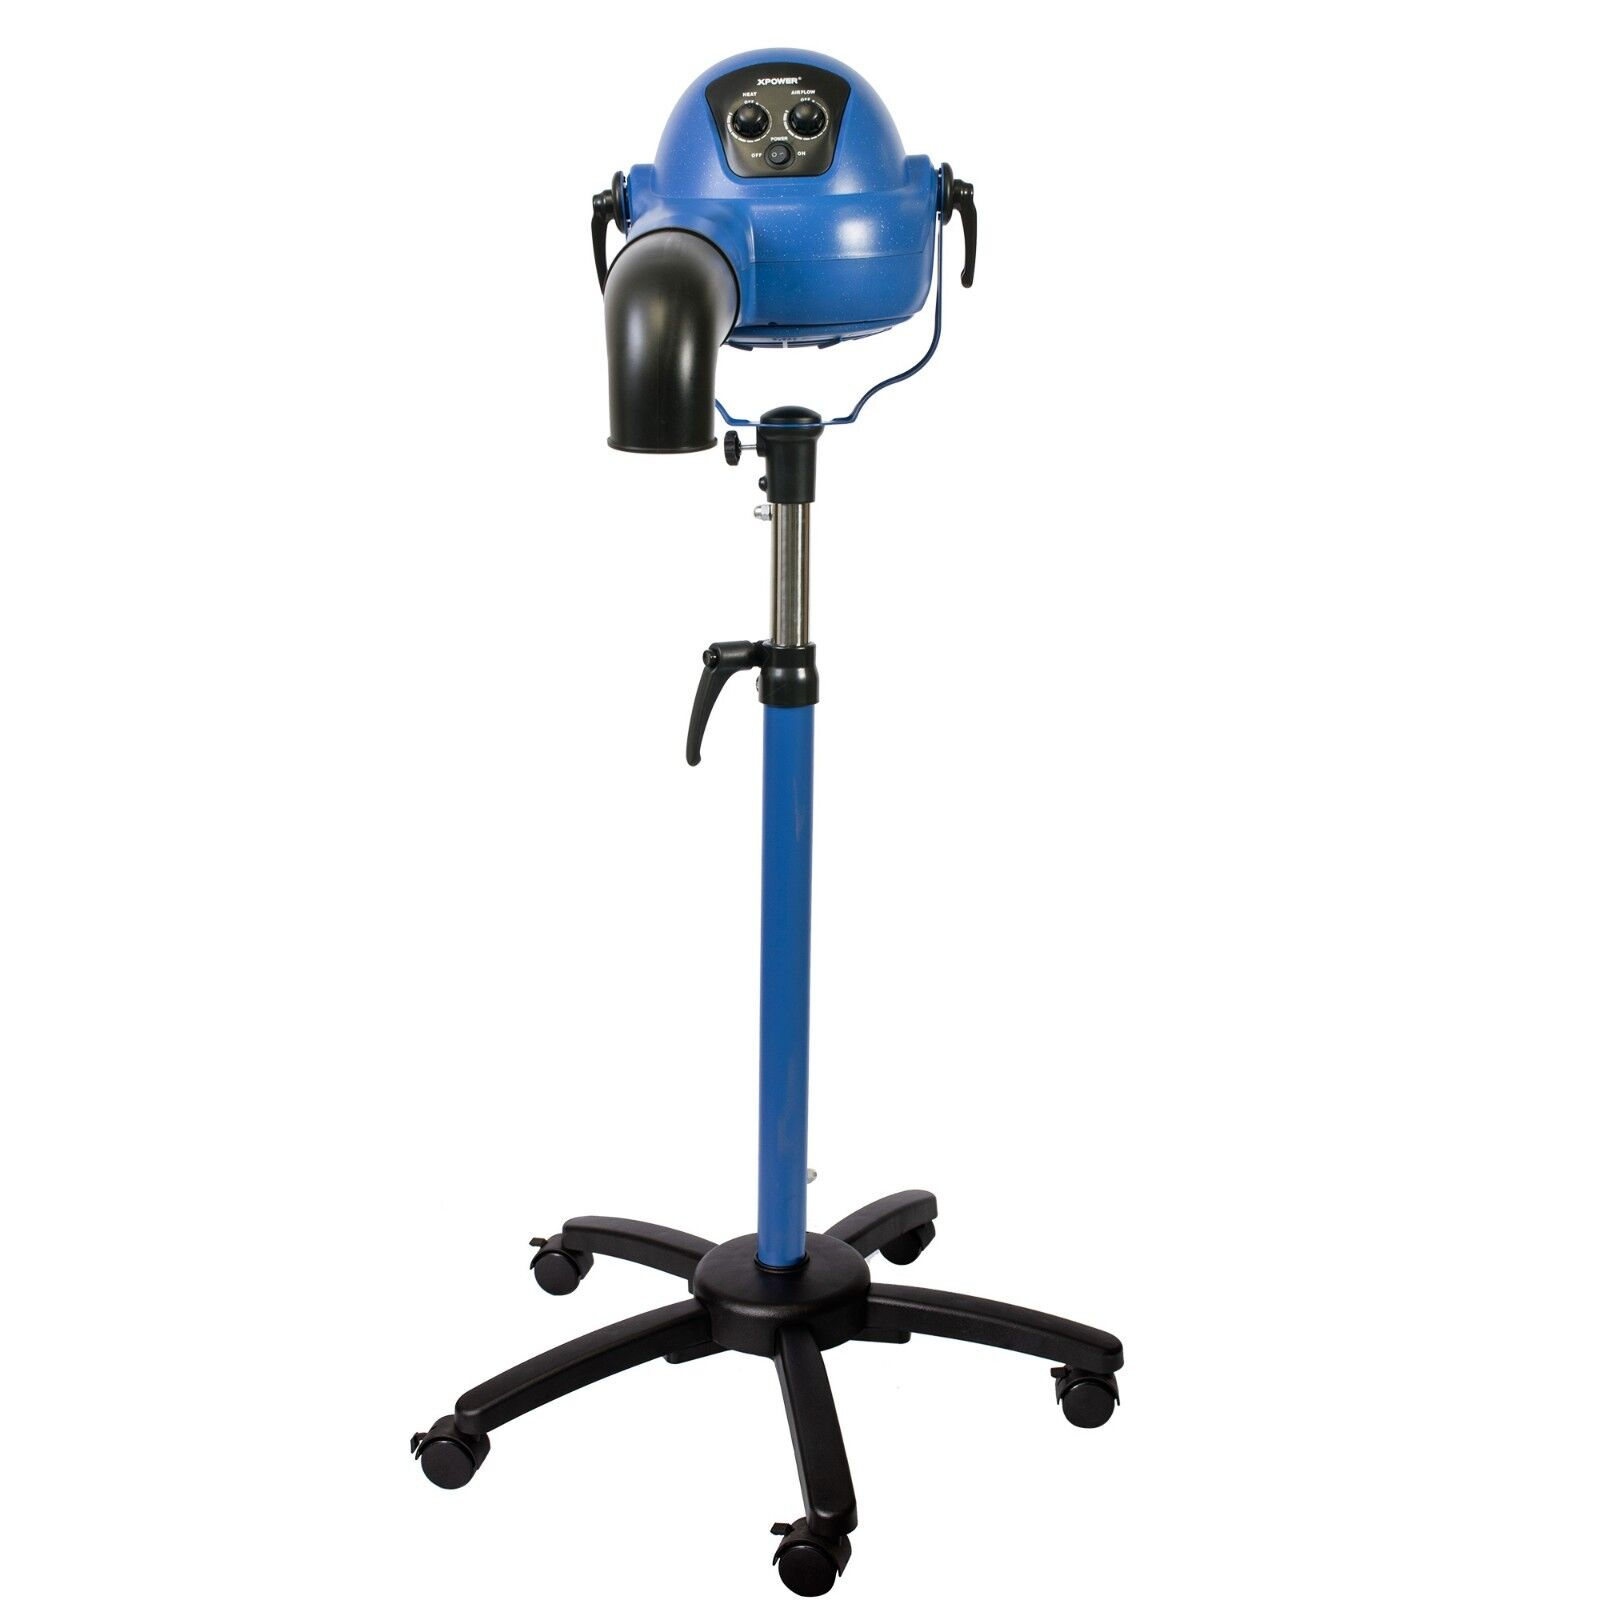 XPOWER B-16 Pro Finisher Brushless Pet Ionic Stand Stand Stand Dryer Variable Speed & Heat 0af942